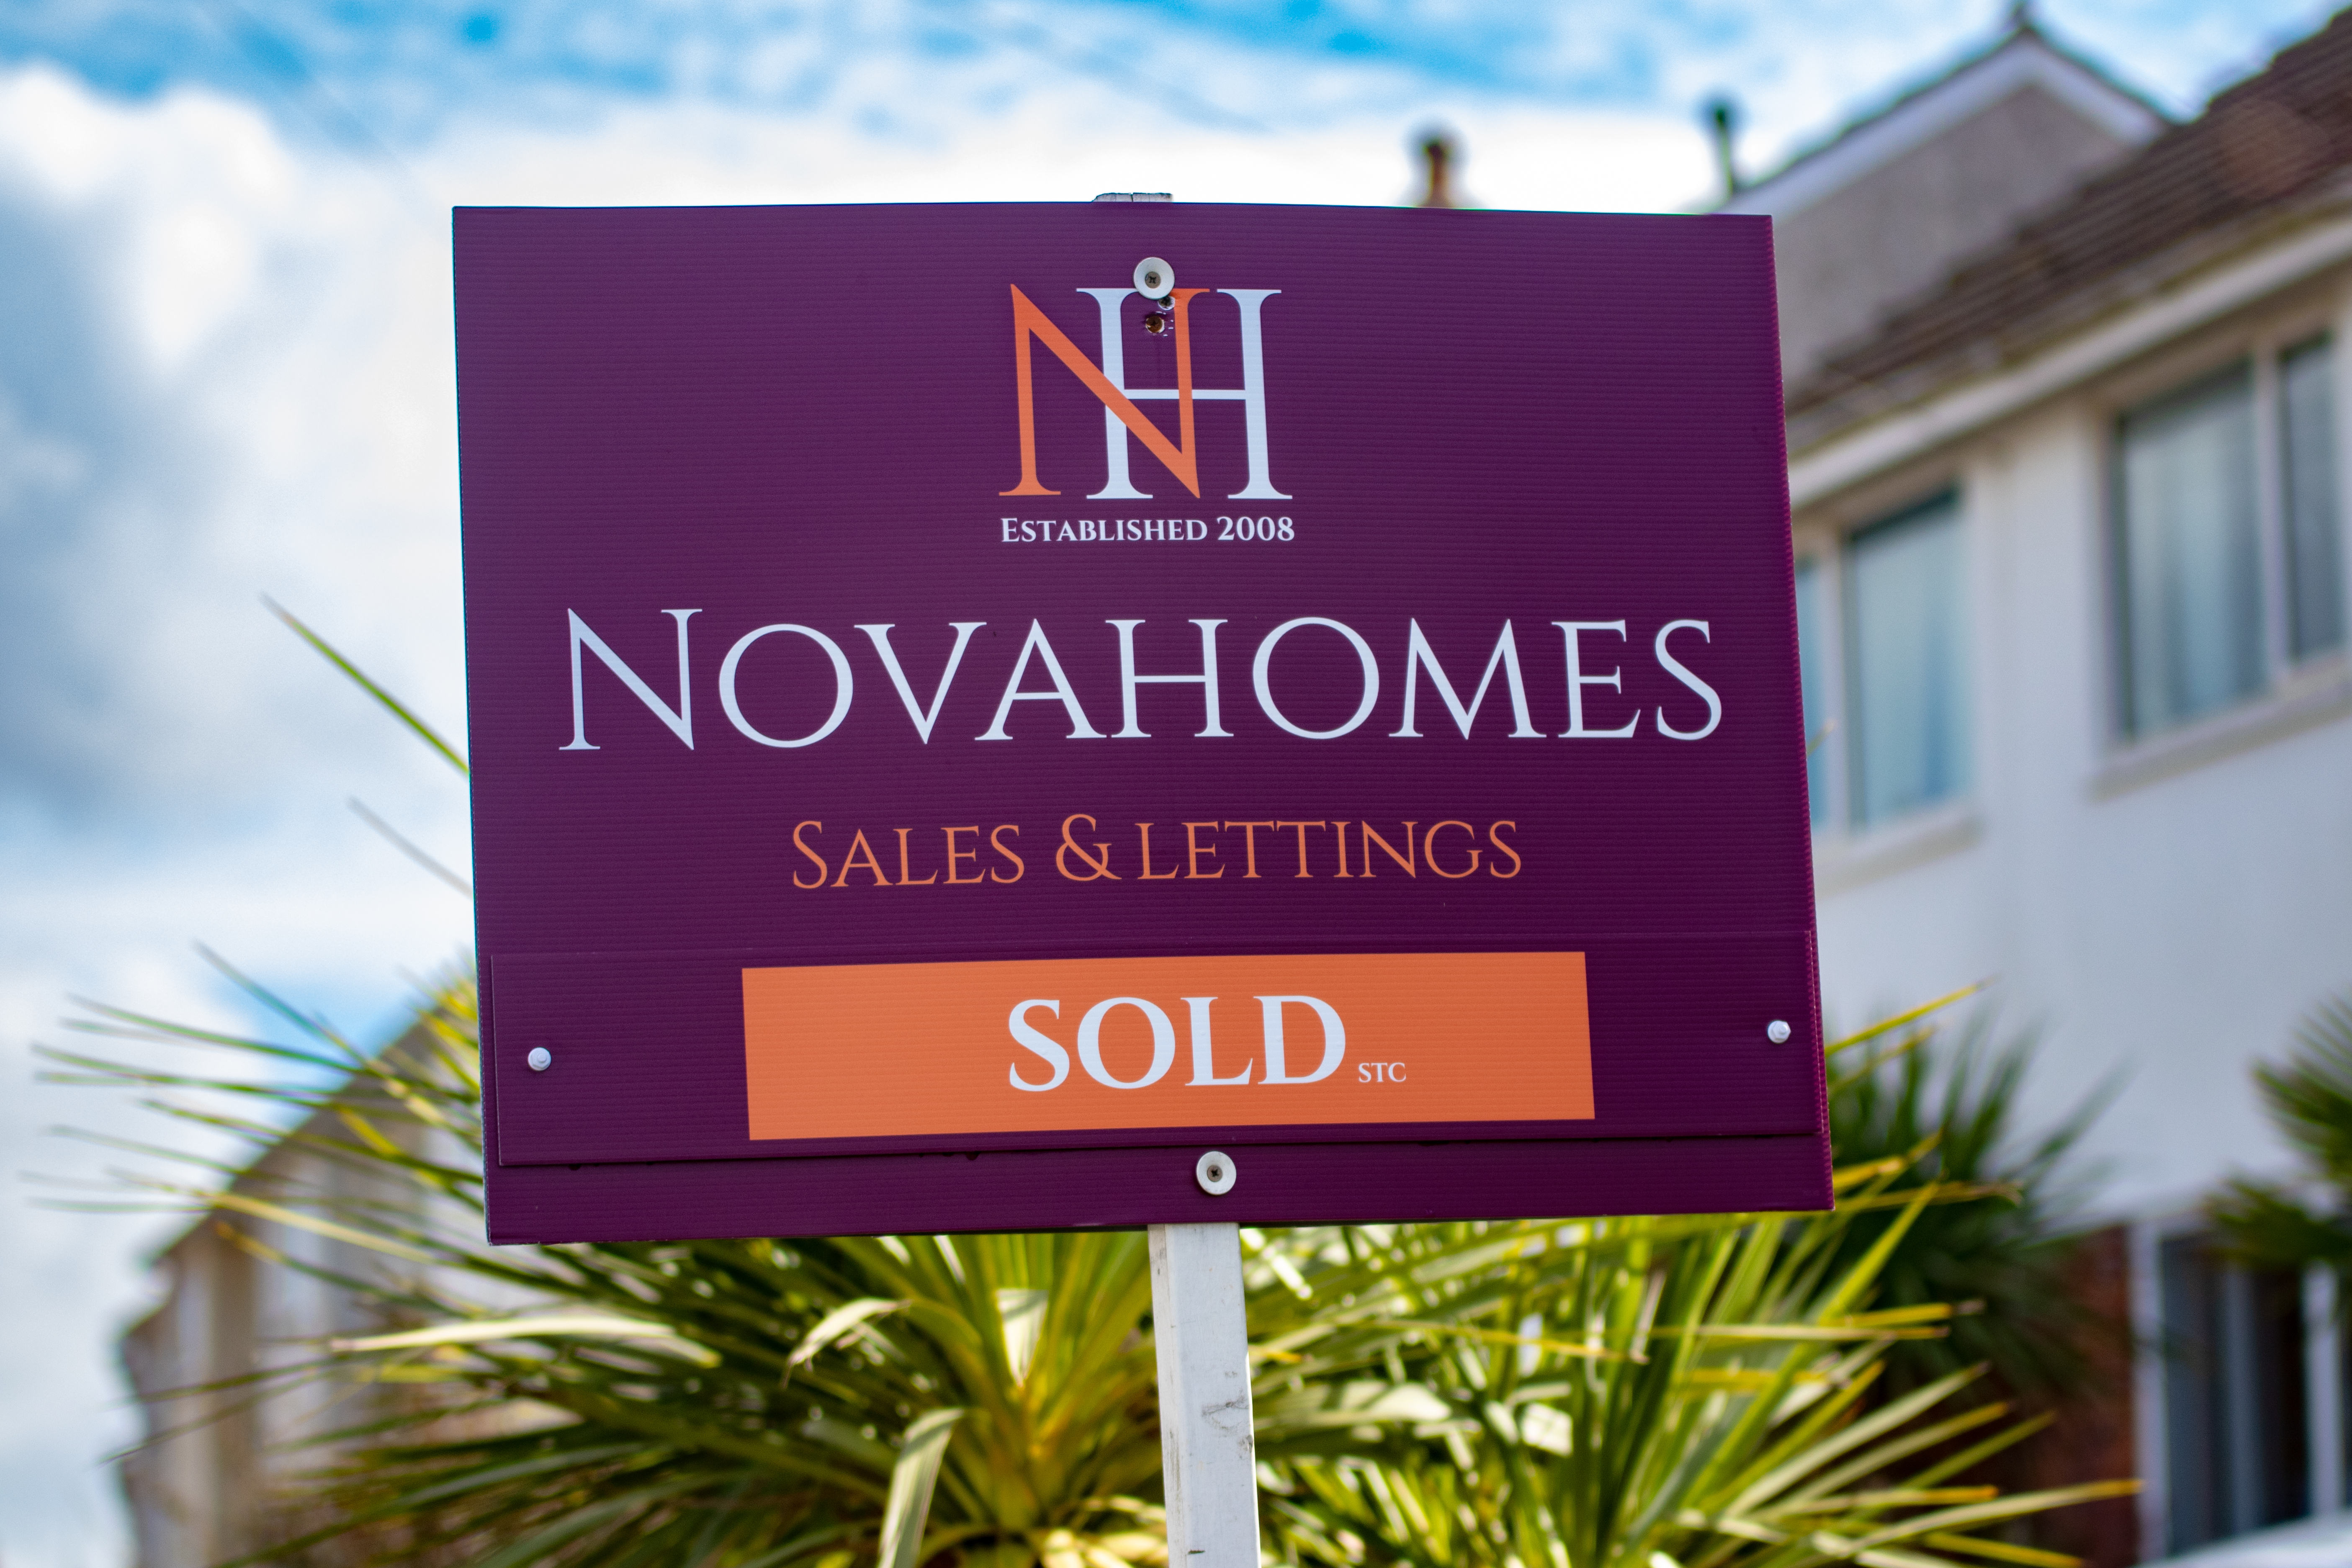 Novahomes Sales and Lettings - Plymouth, Devon PL3 4DT - 01752 206040 | ShowMeLocal.com